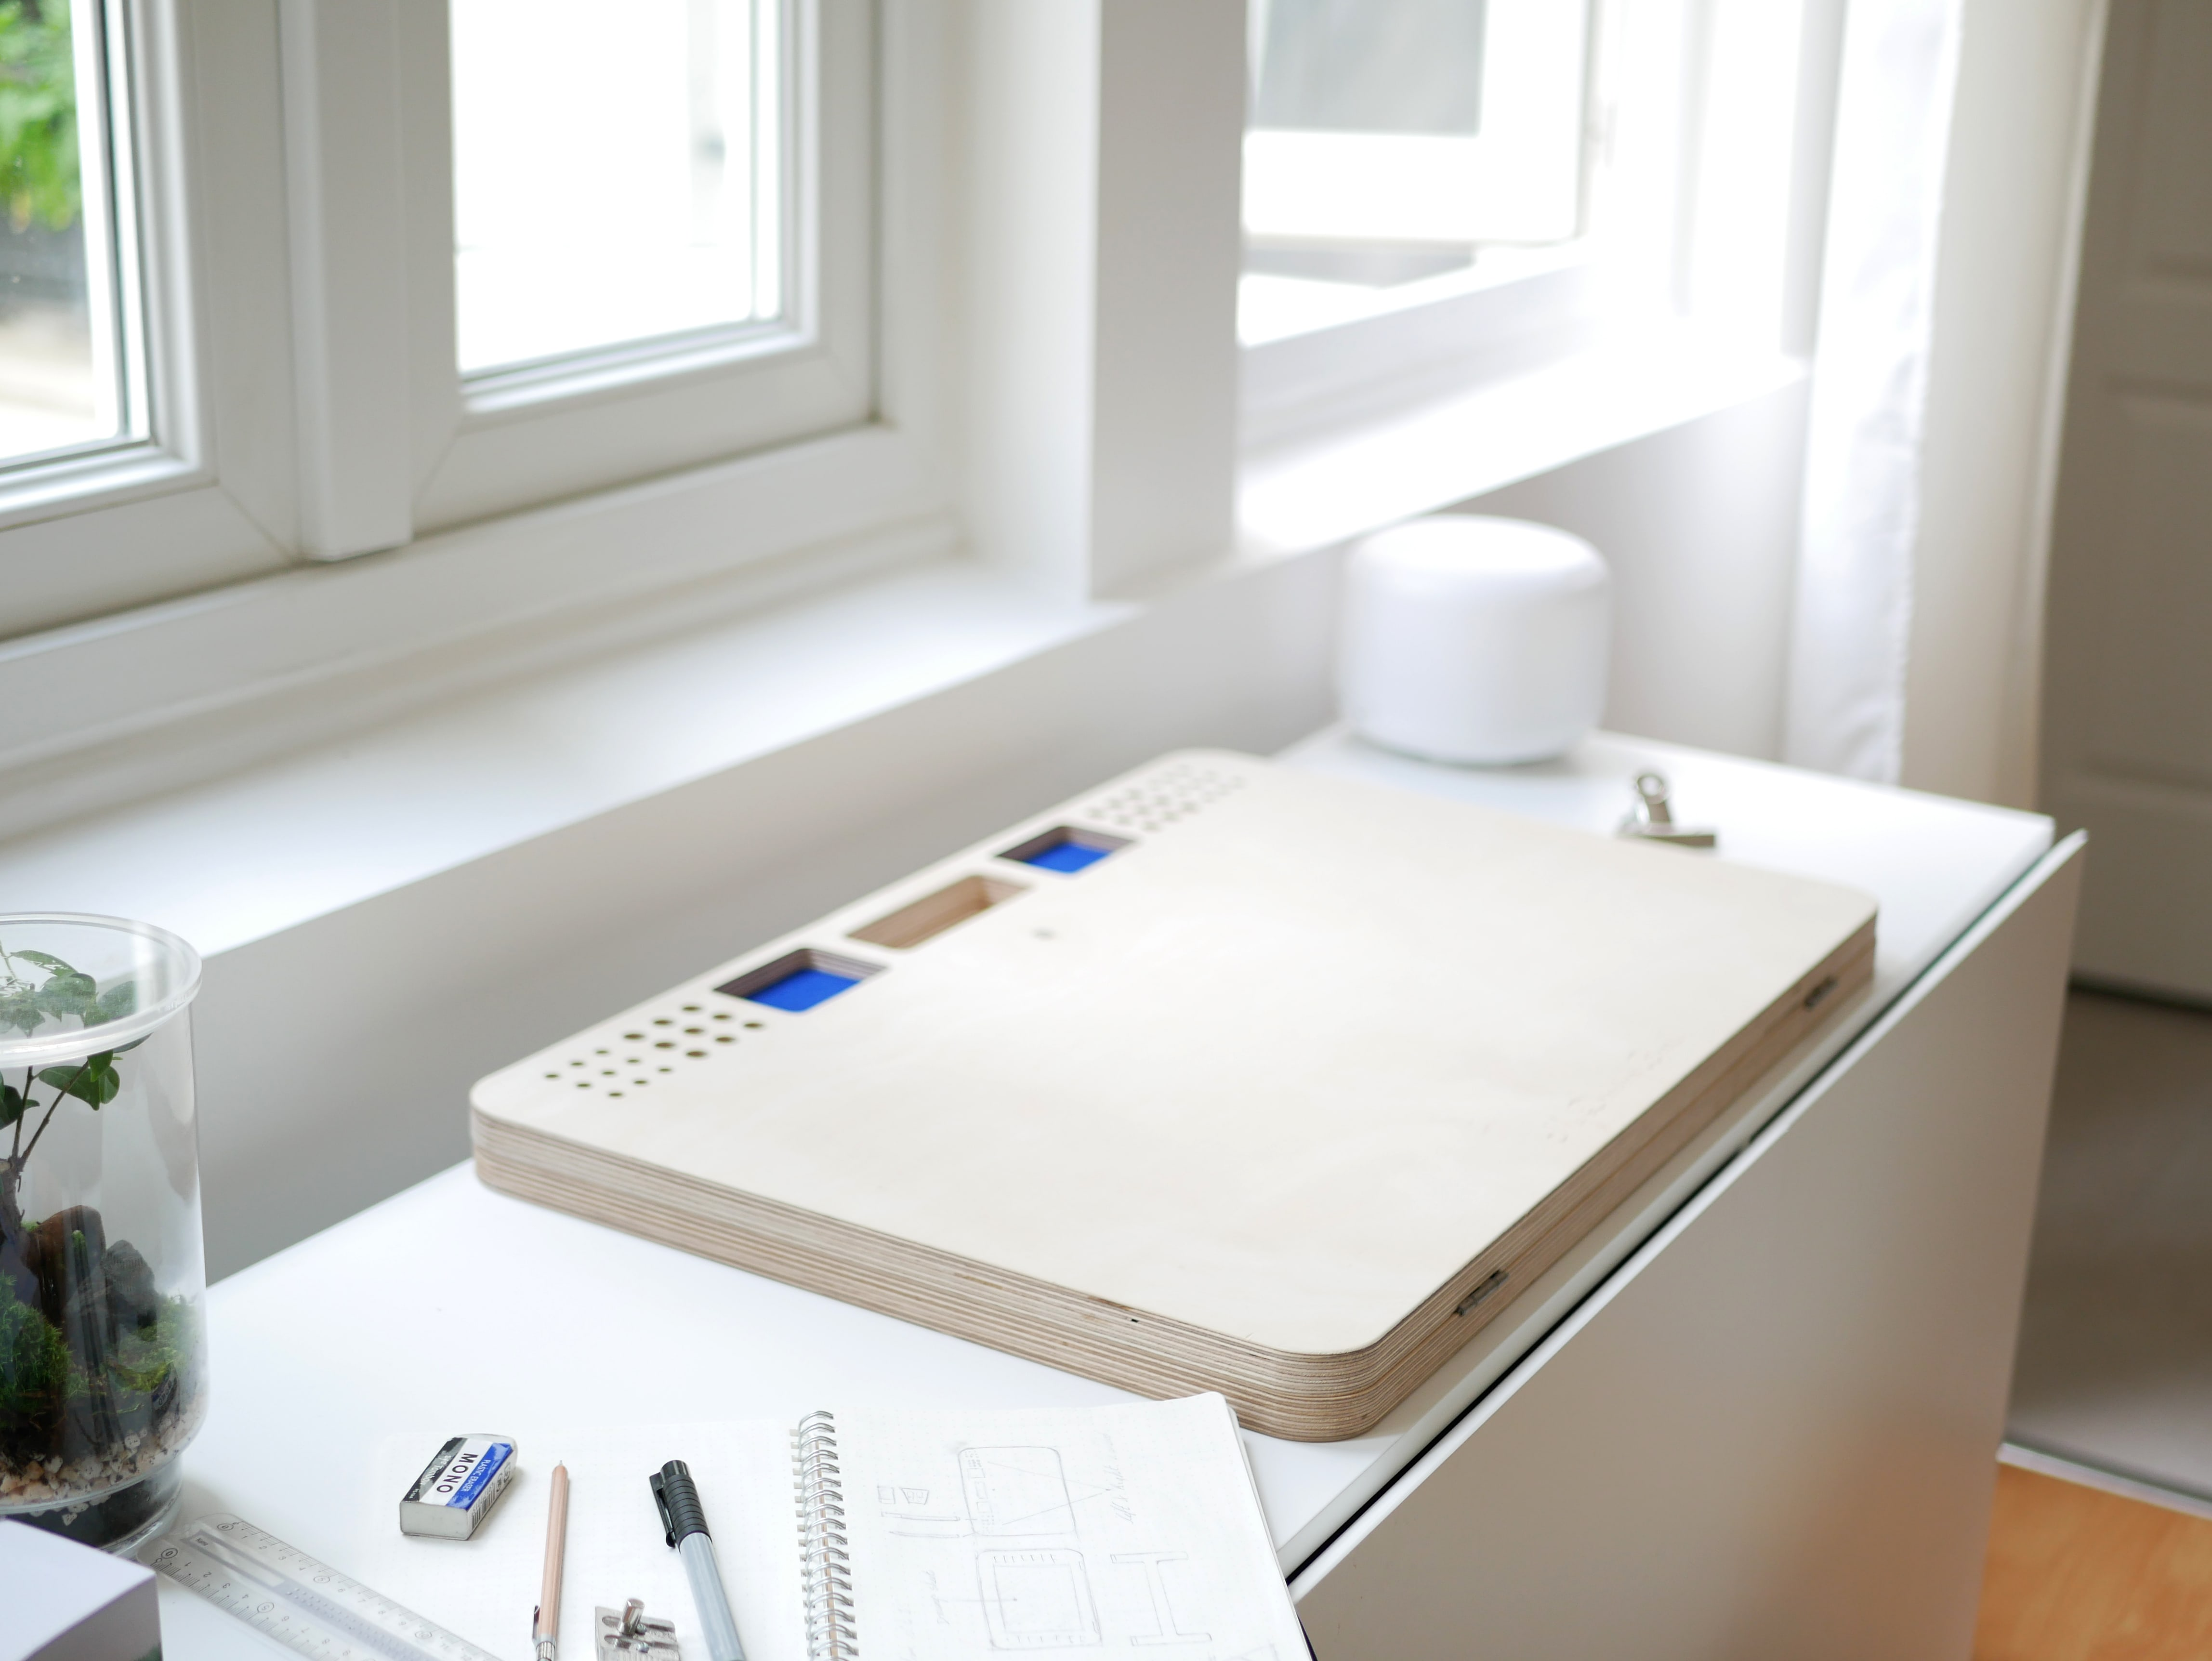 My Drawing Board la table à dessin par Benjamin Benais